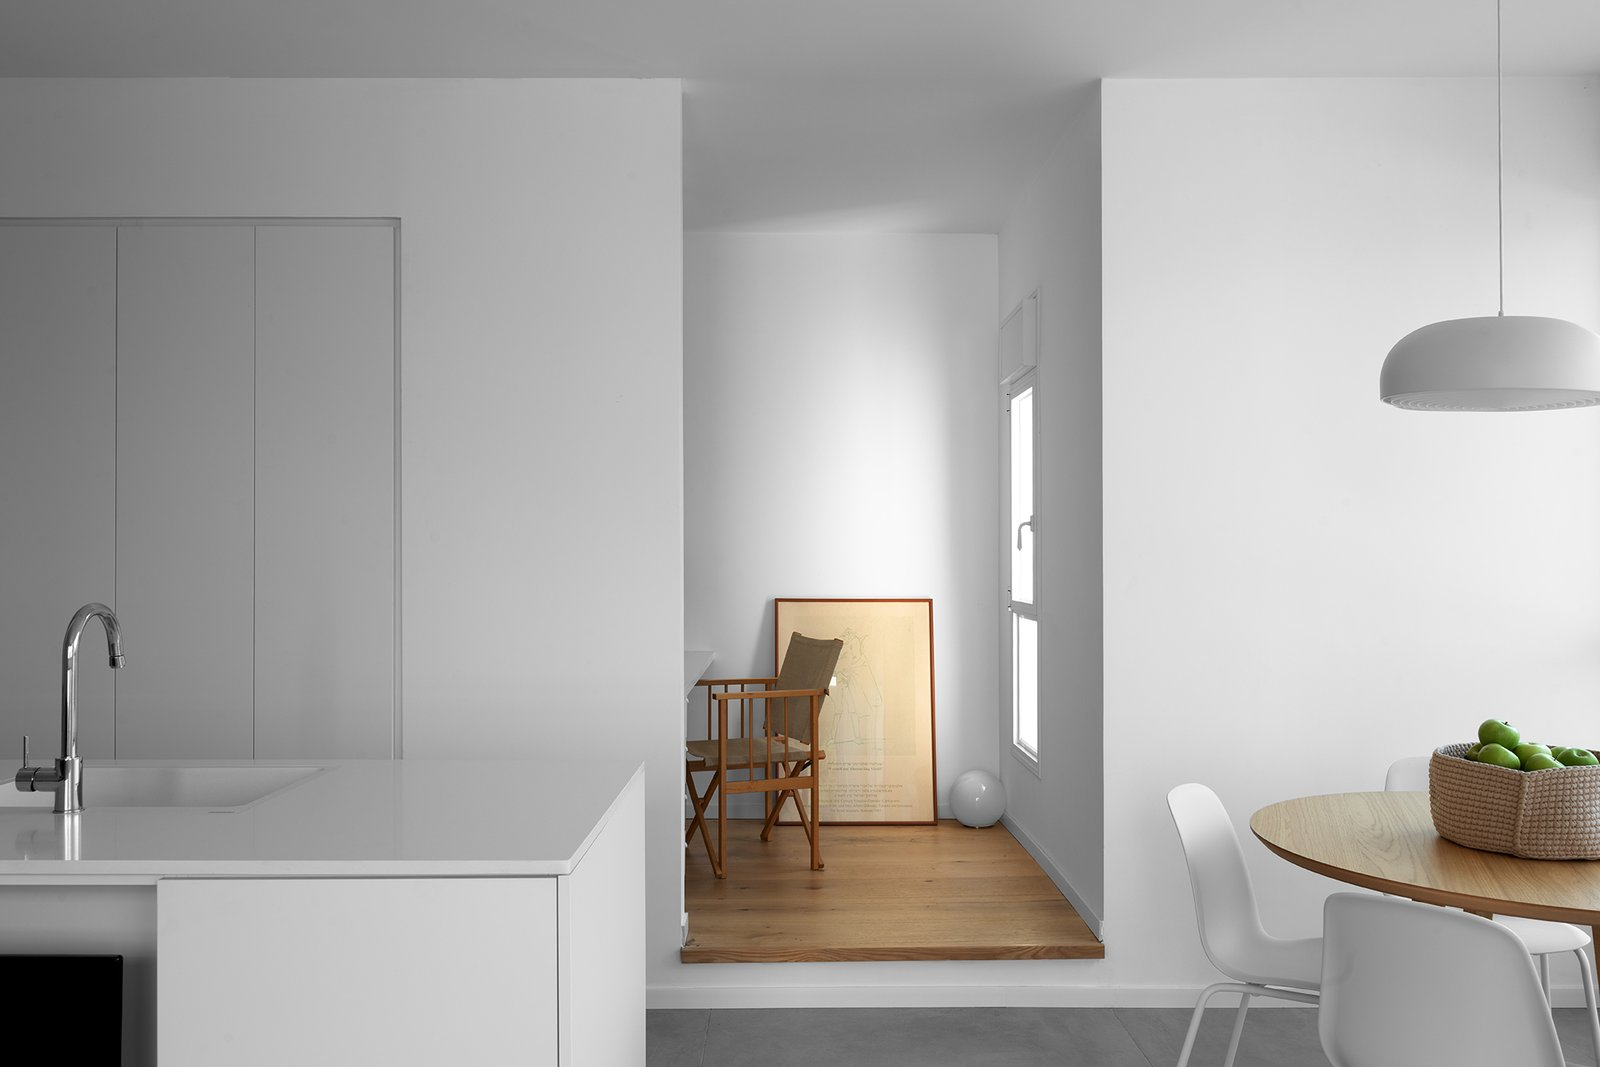 Apartment Renovation in Haifa by Michael Peled Architecture Studio kitchen and raised office nook